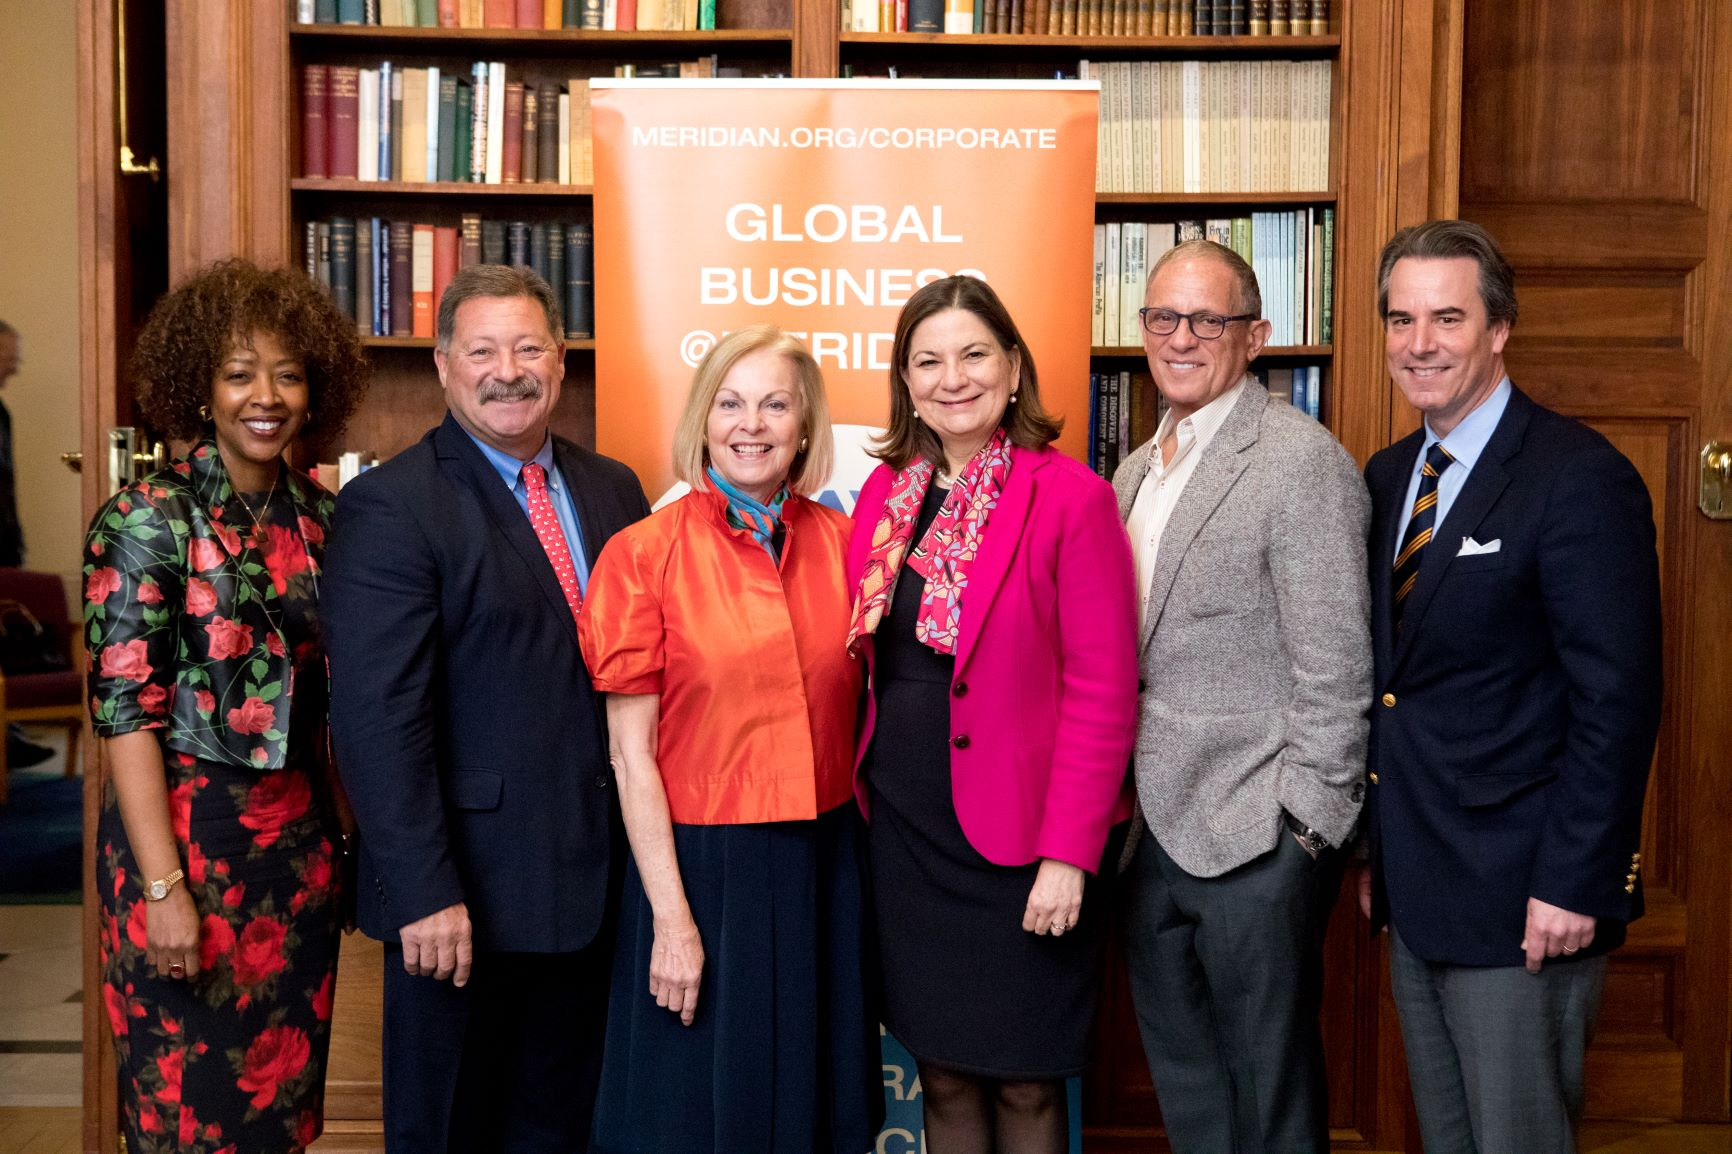 Amb. Martha Bárcena Coqui with Meridian CEO Amd. Stuart Holliday and members of Meridian's Corporate Council.